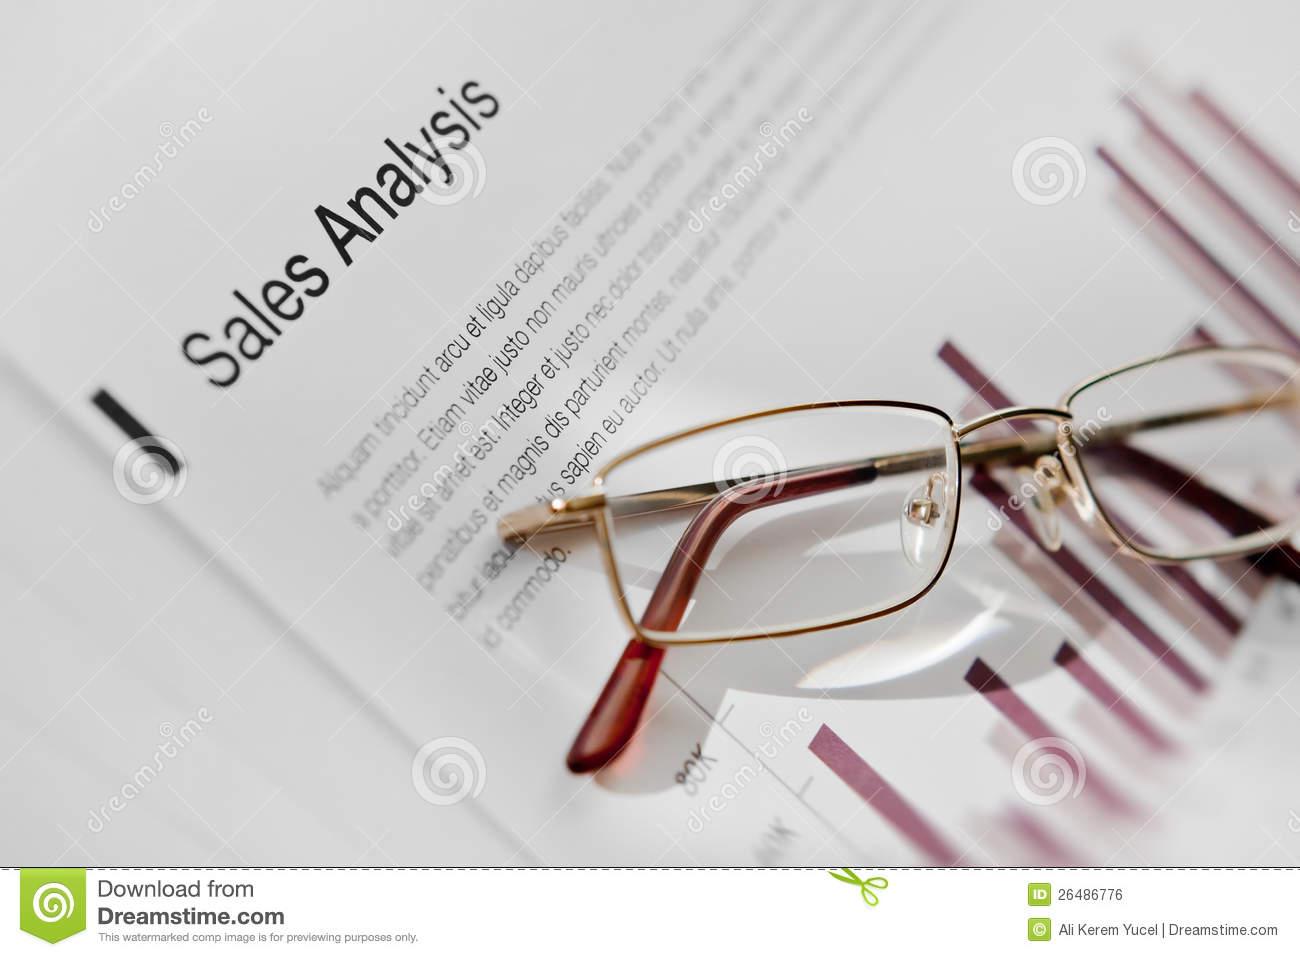 sales analisys